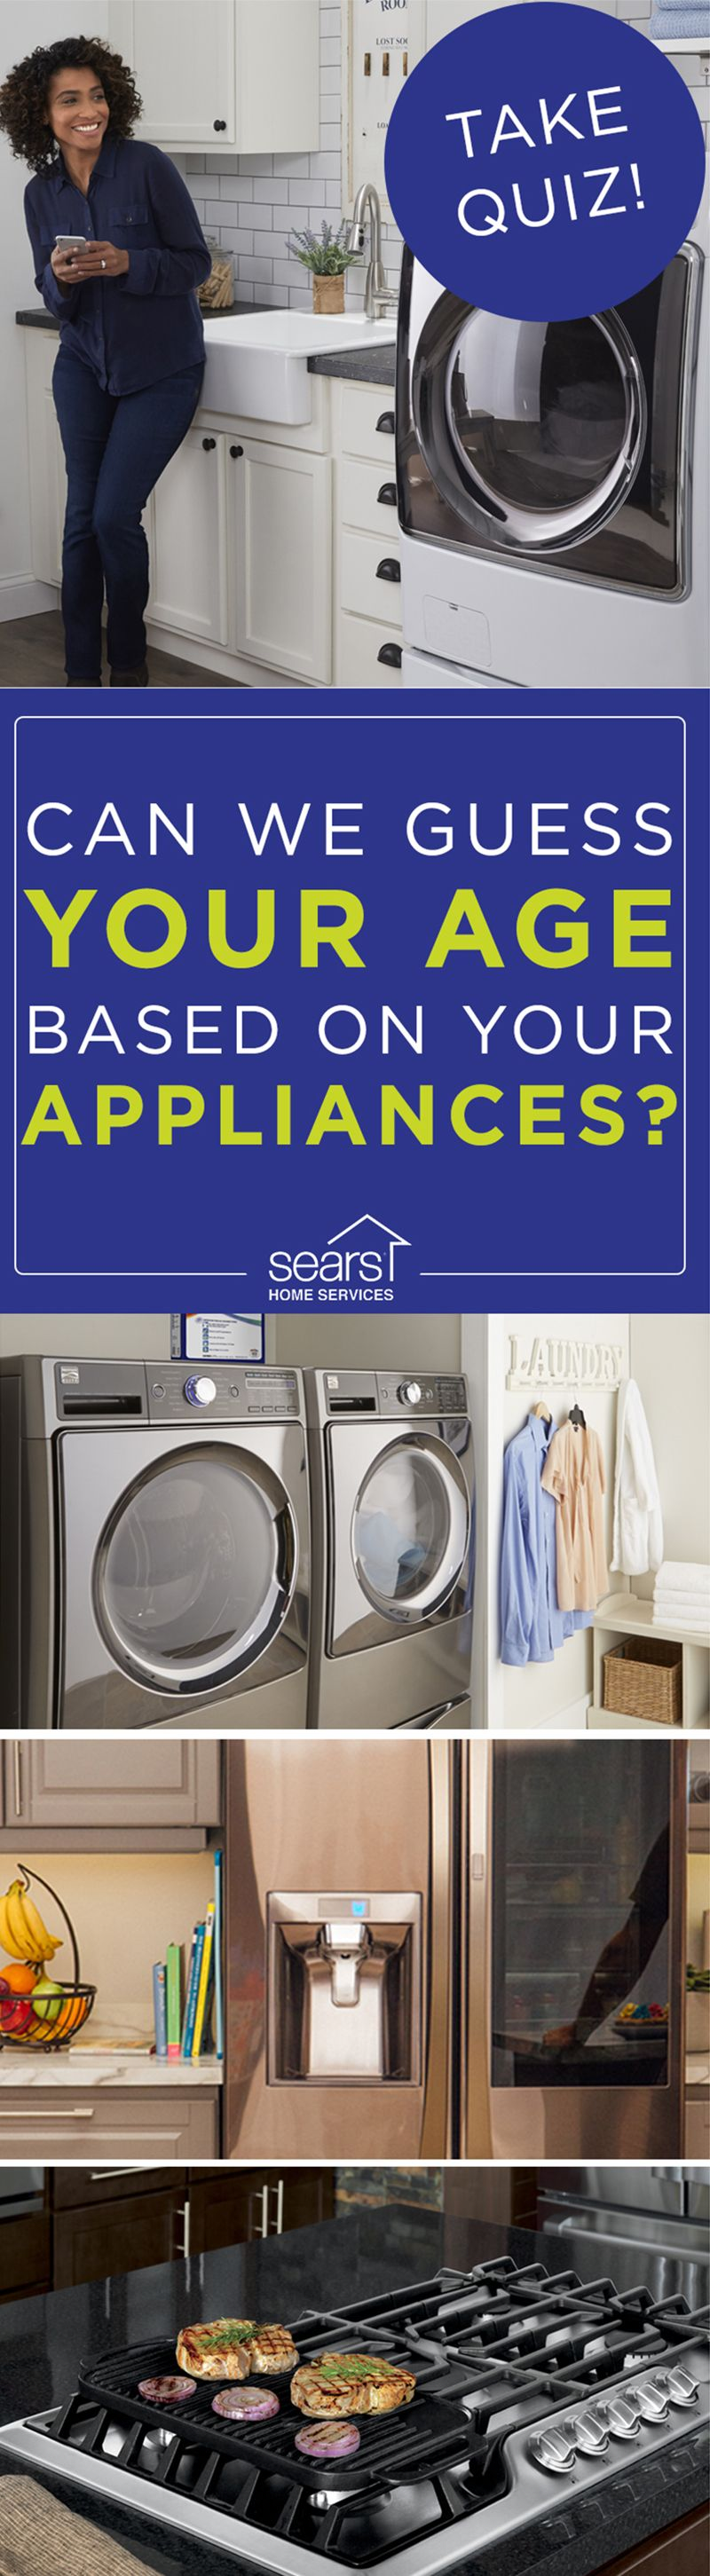 QUIZ Can We Guess Your Age Based on Your Appliances? Age